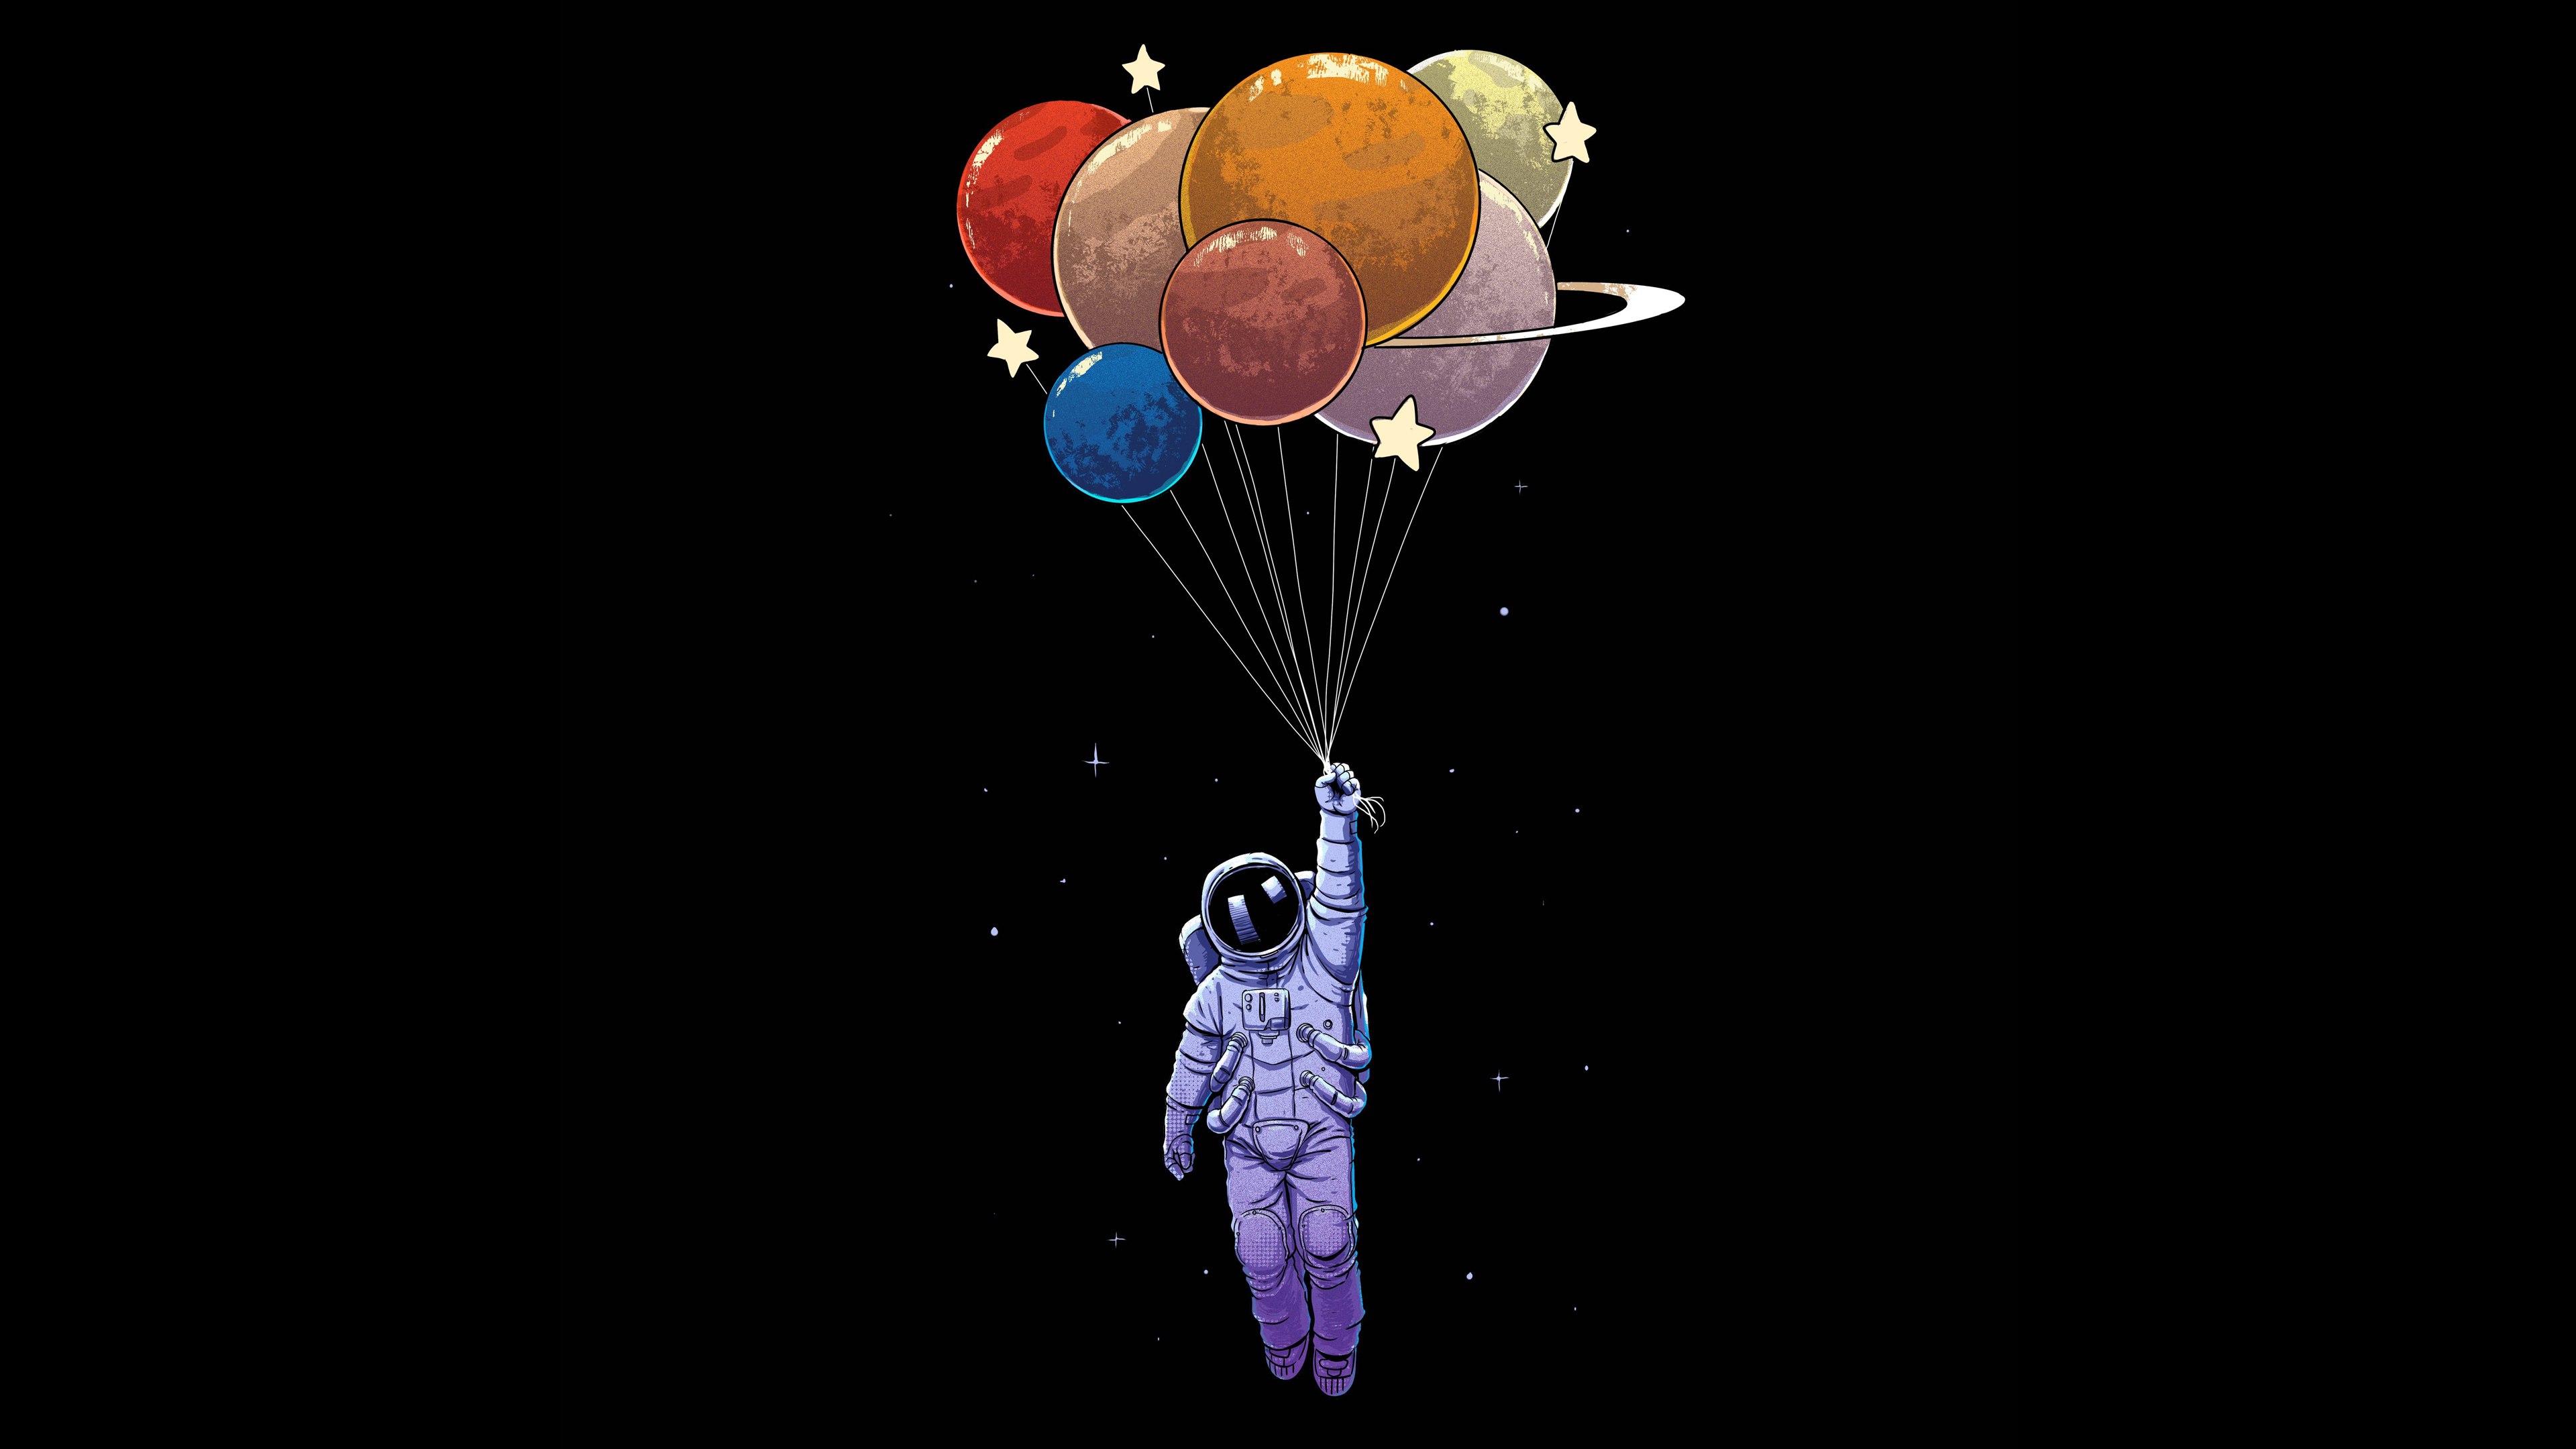 Astronaut Exploration 4k Hd Artist 4k Wallpapers Images Backgrounds Photos And Pictures